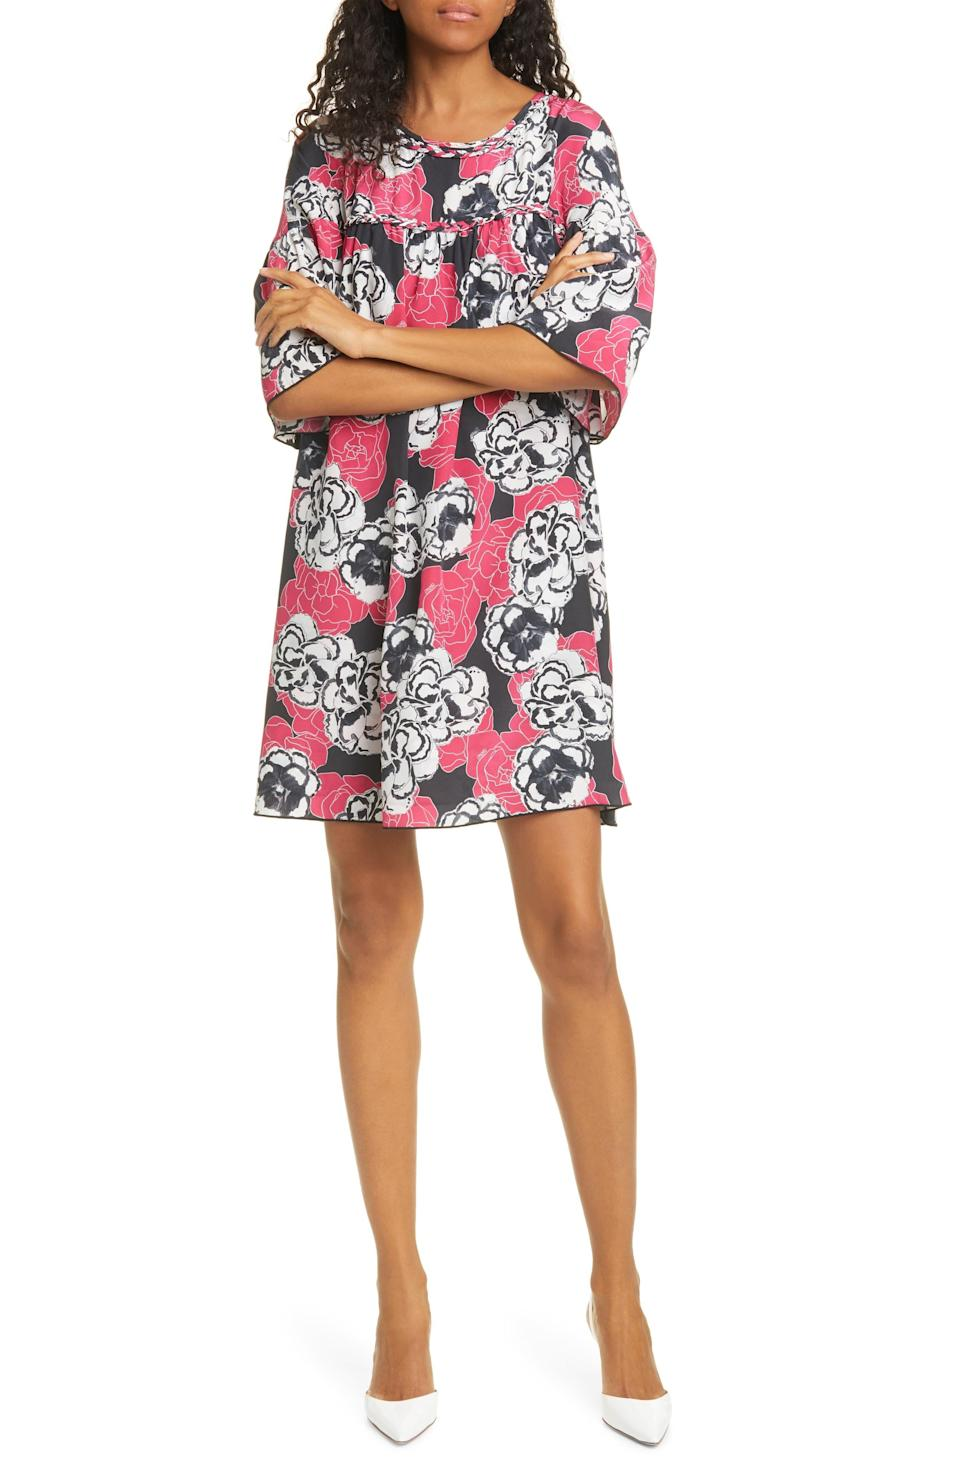 """<p><strong>DYVNA</strong></p><p>nordstrom.com</p><p><a href=""""https://go.redirectingat.com?id=74968X1596630&url=https%3A%2F%2Fshop.nordstrom.com%2Fs%2Fdyvna-floral-silk-minidress%2F5633472&sref=https%3A%2F%2Fwww.marieclaire.com%2Ffashion%2Fg32905504%2Fnordstrom-sale-june-2020%2F"""" rel=""""nofollow noopener"""" target=""""_blank"""" data-ylk=""""slk:SHOP IT"""" class=""""link rapid-noclick-resp"""">SHOP IT </a></p><p><del>$565</del><strong><br>$169.70</strong></p><p>Between its fun floral pattern and easy, breezy silhouette, we have a feeling you'll want to wear this dress all summer long.</p>"""